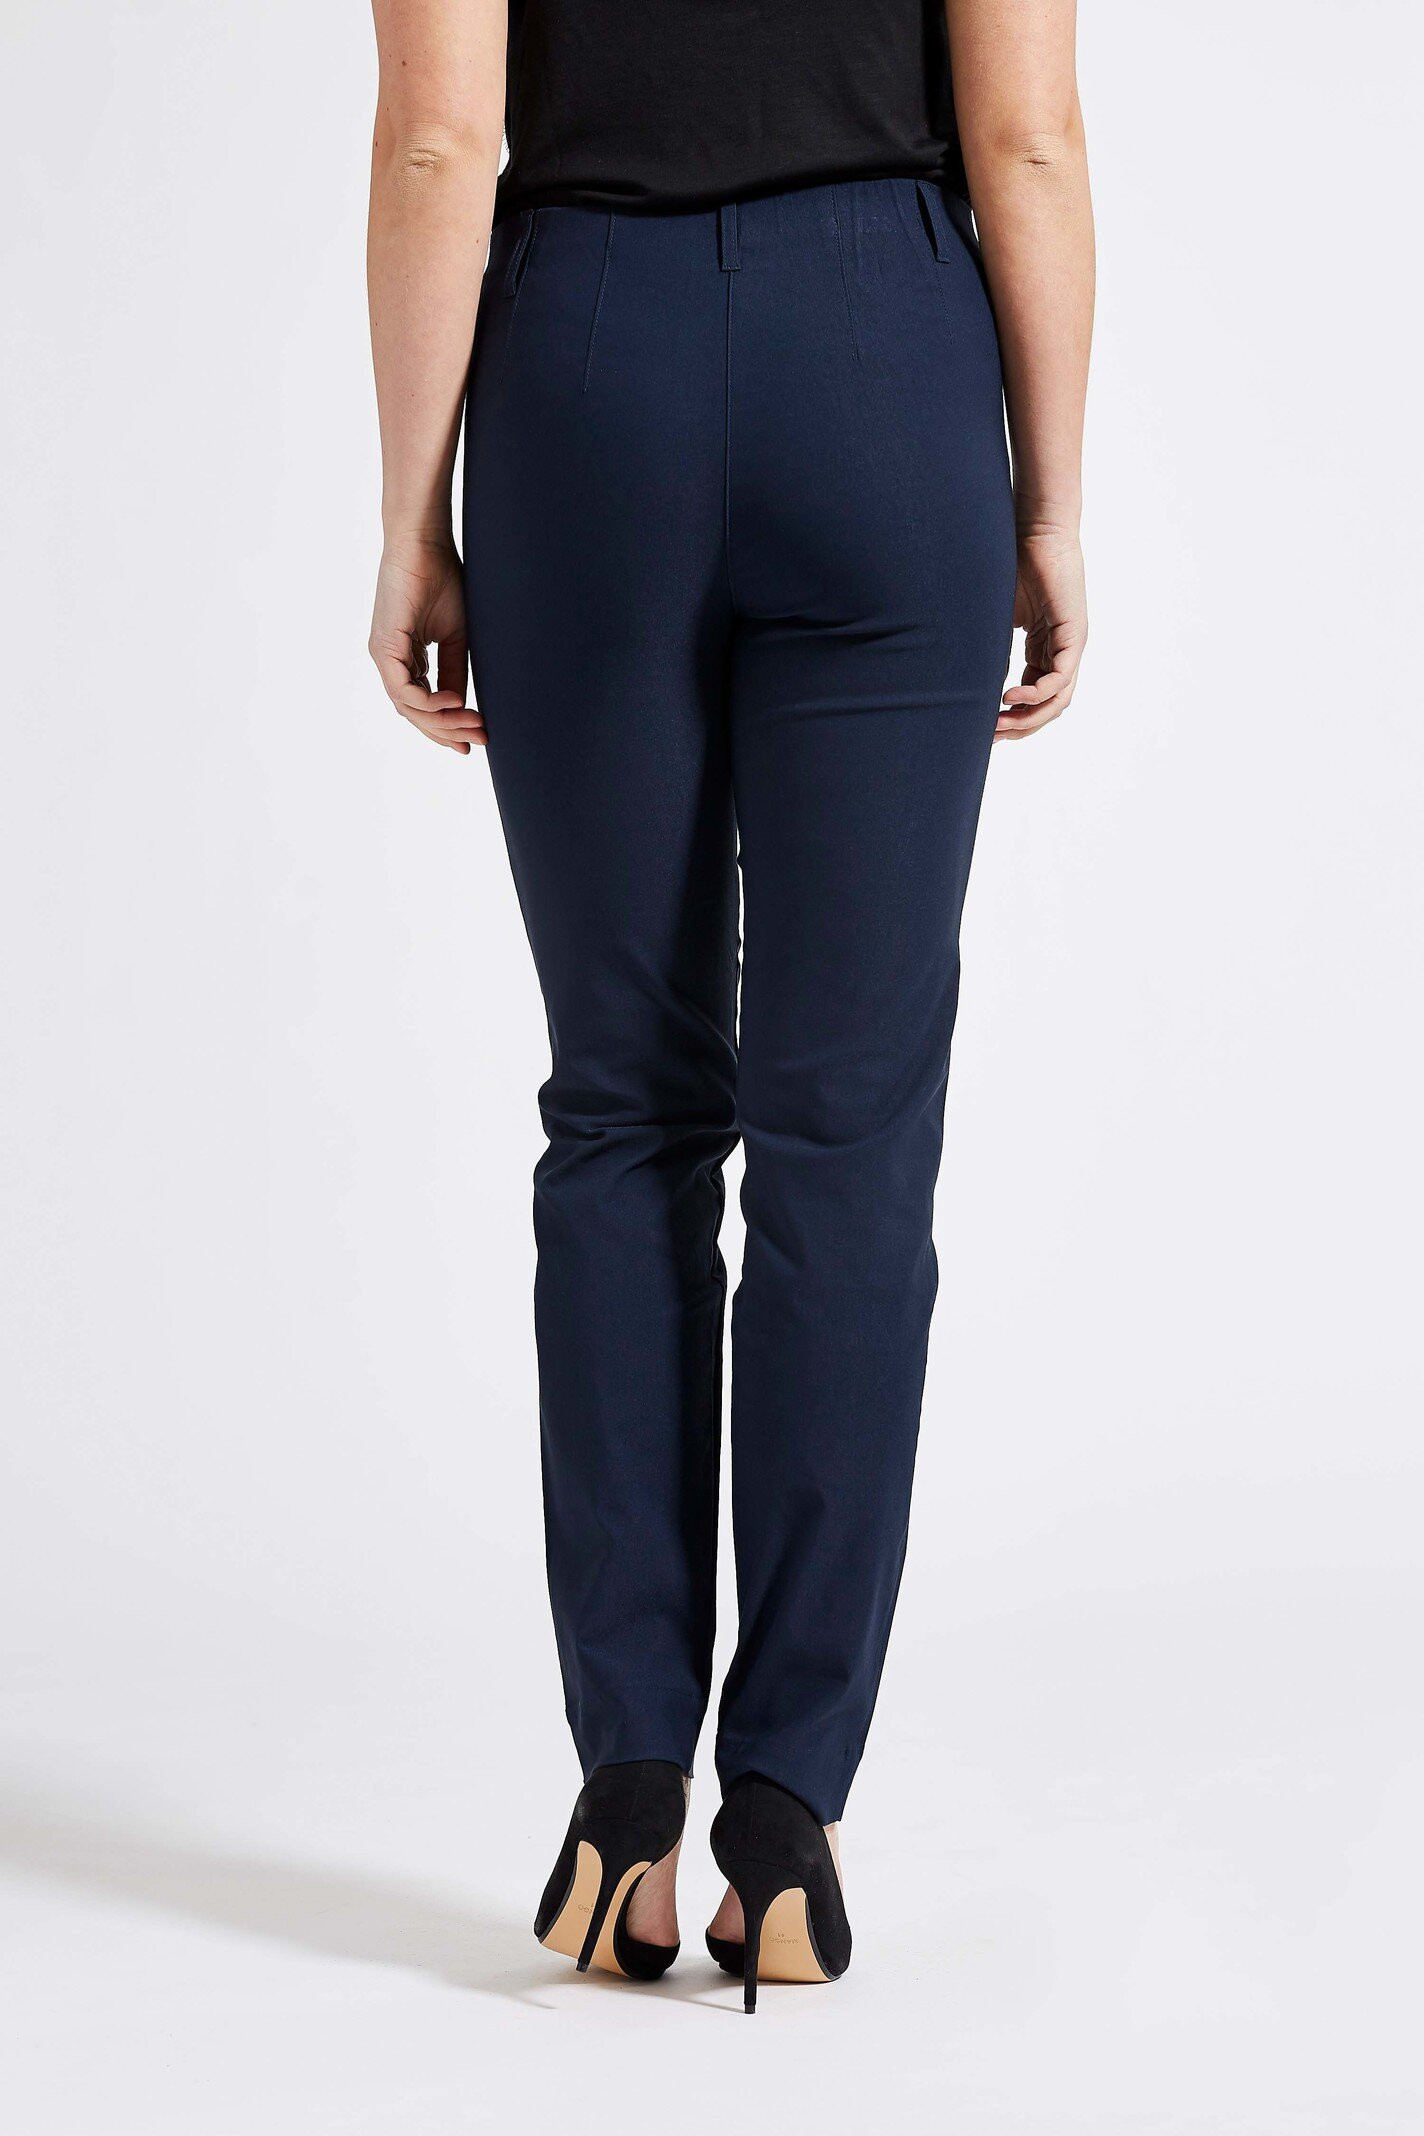 29714 49970 Pants Navy fra Laurie.